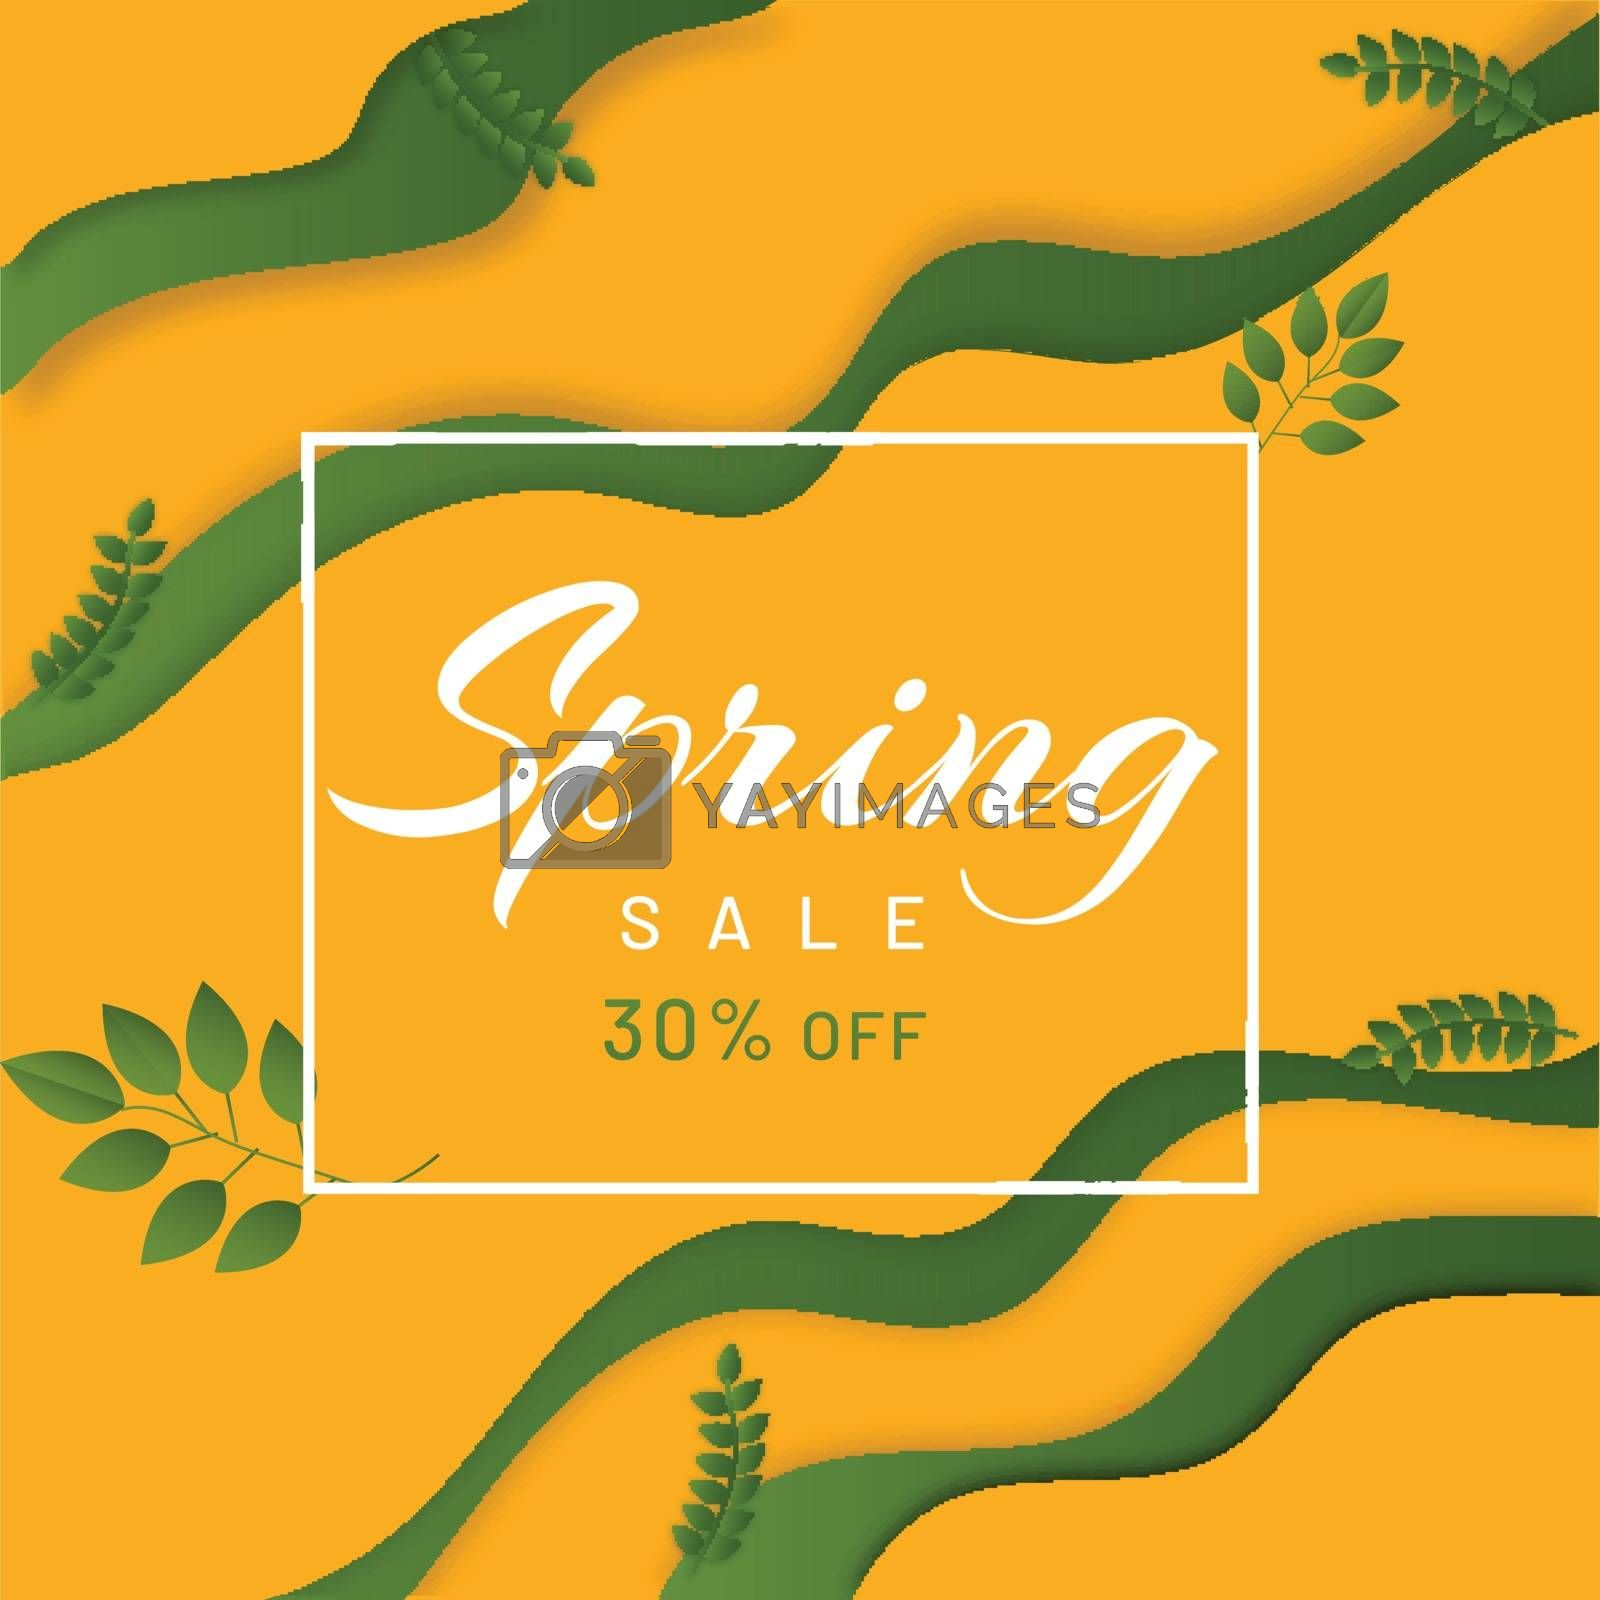 Royalty free image of Paper layer cut background with 30% discount offer for Spring Sa by aispl